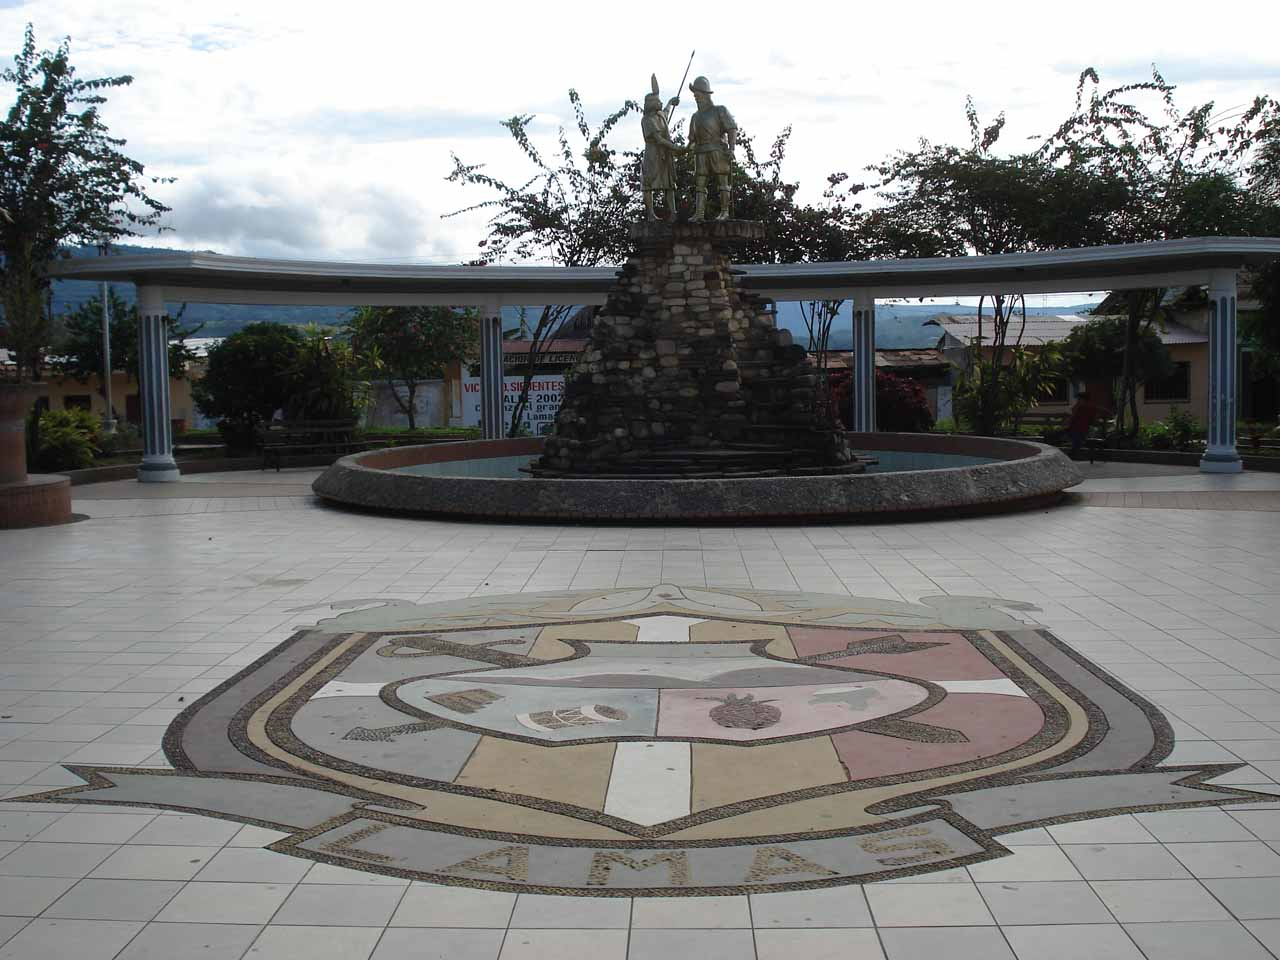 The town square of Lamas